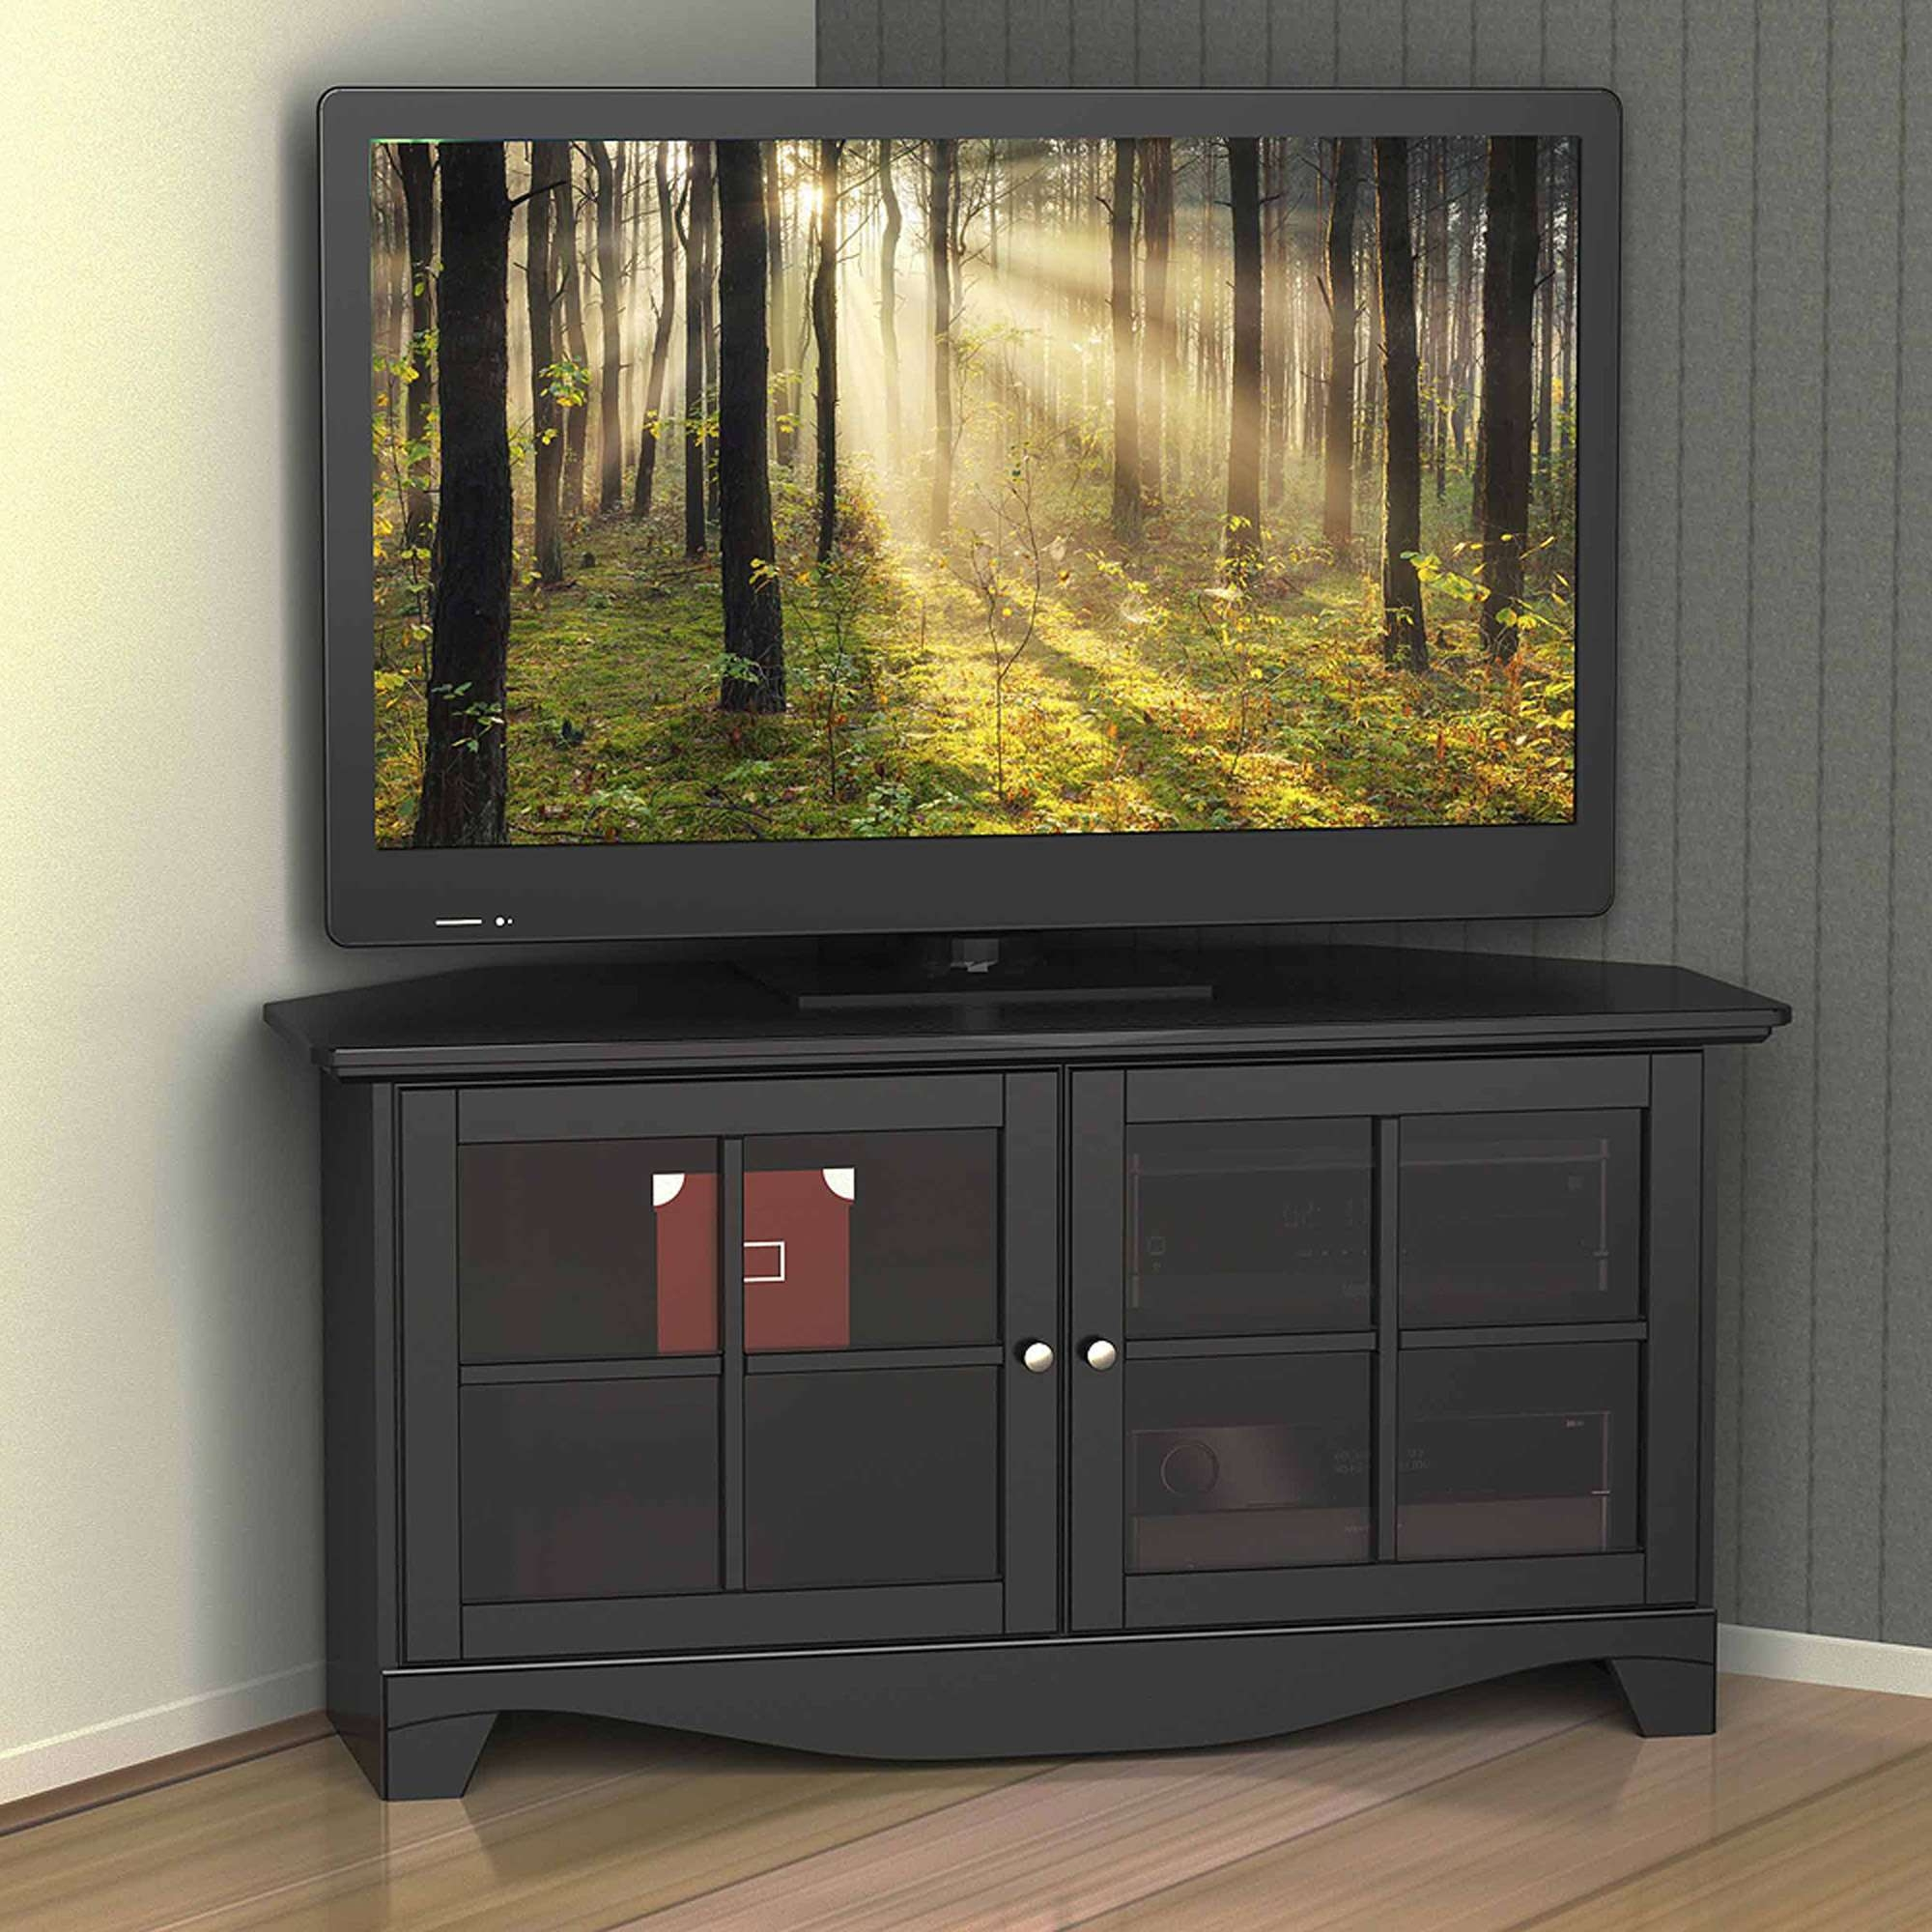 Nexera Pinnacle Black 2 Door Corner Tv Stand For Tvs Up To 49 With Regard To Baby Proof Contemporary Tv Cabinets (View 13 of 20)